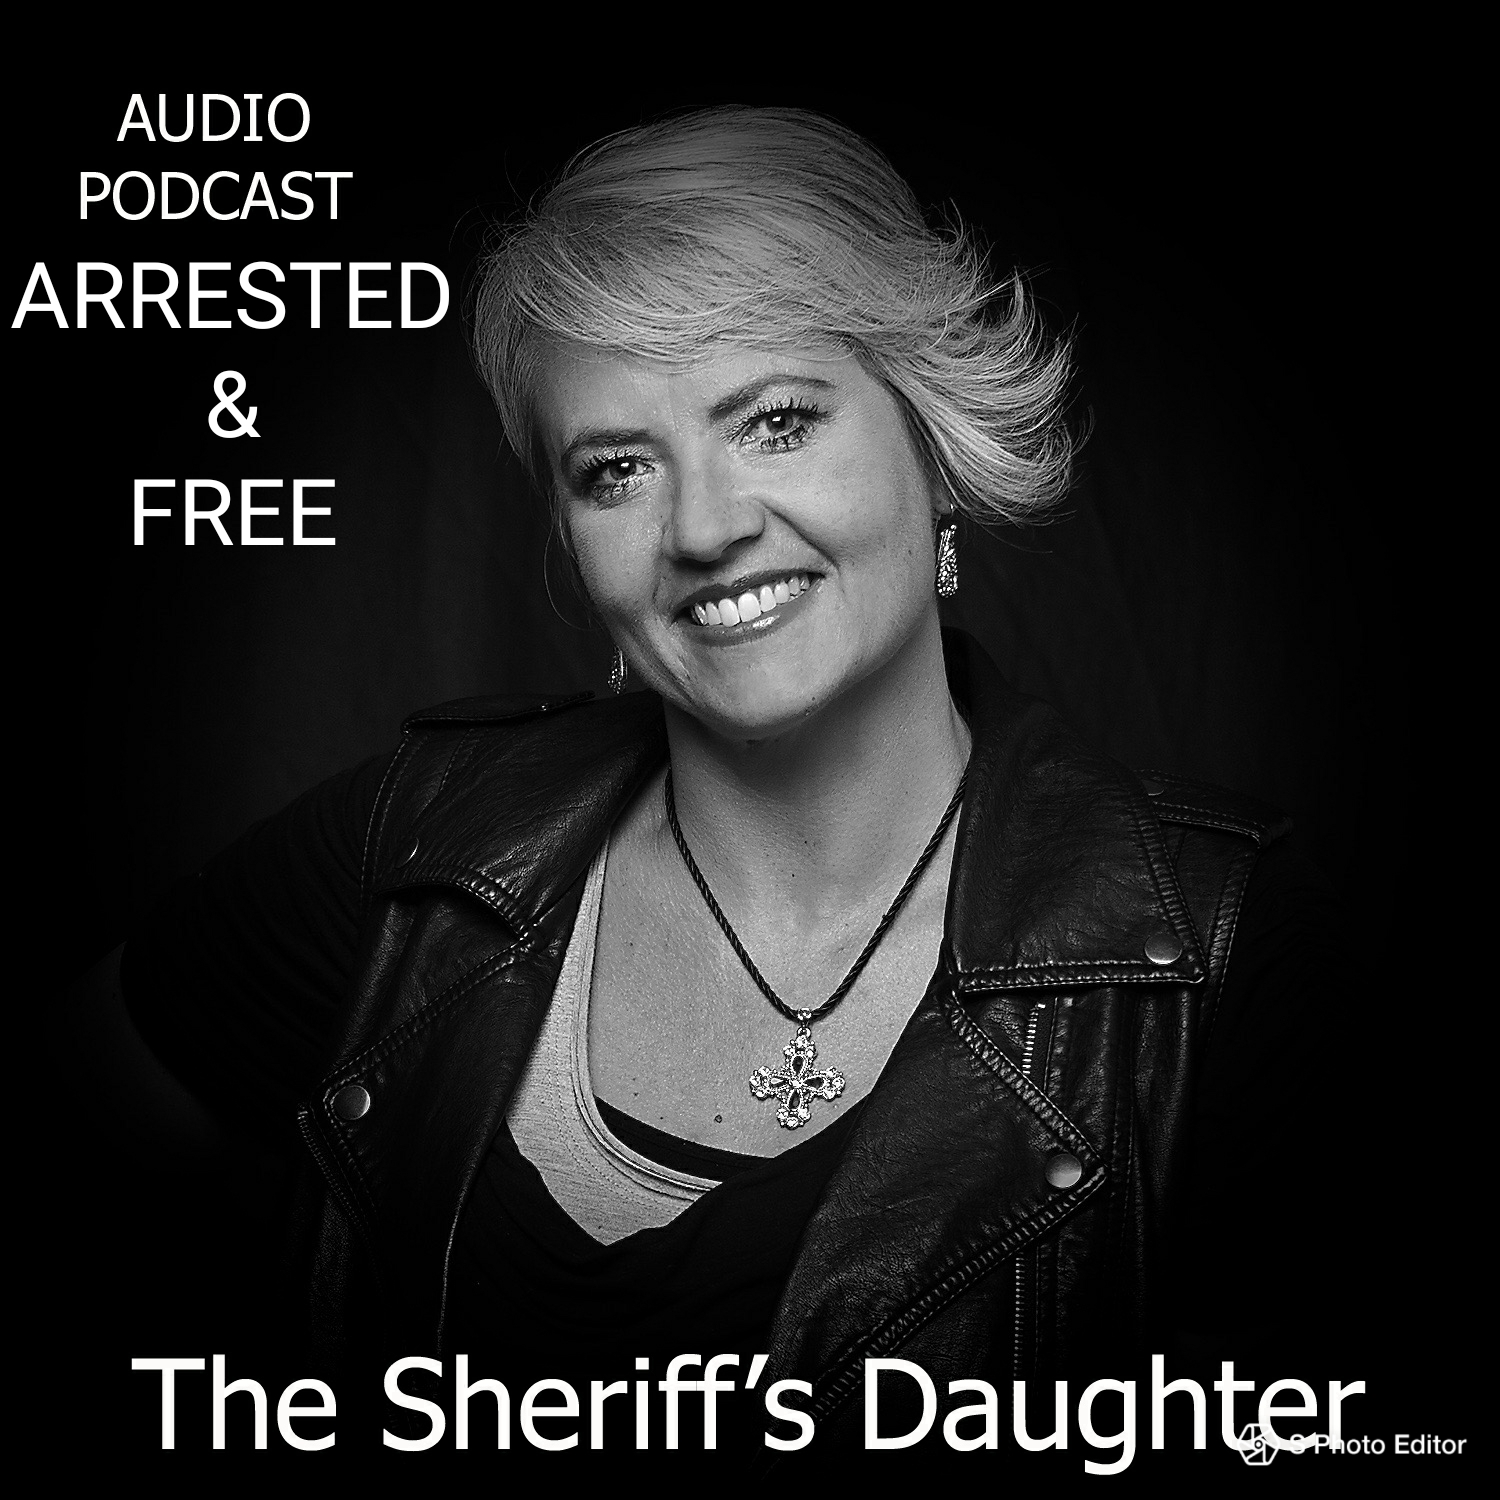 Arrested & Free with The Sheriff's Daughter - July 28, 2018